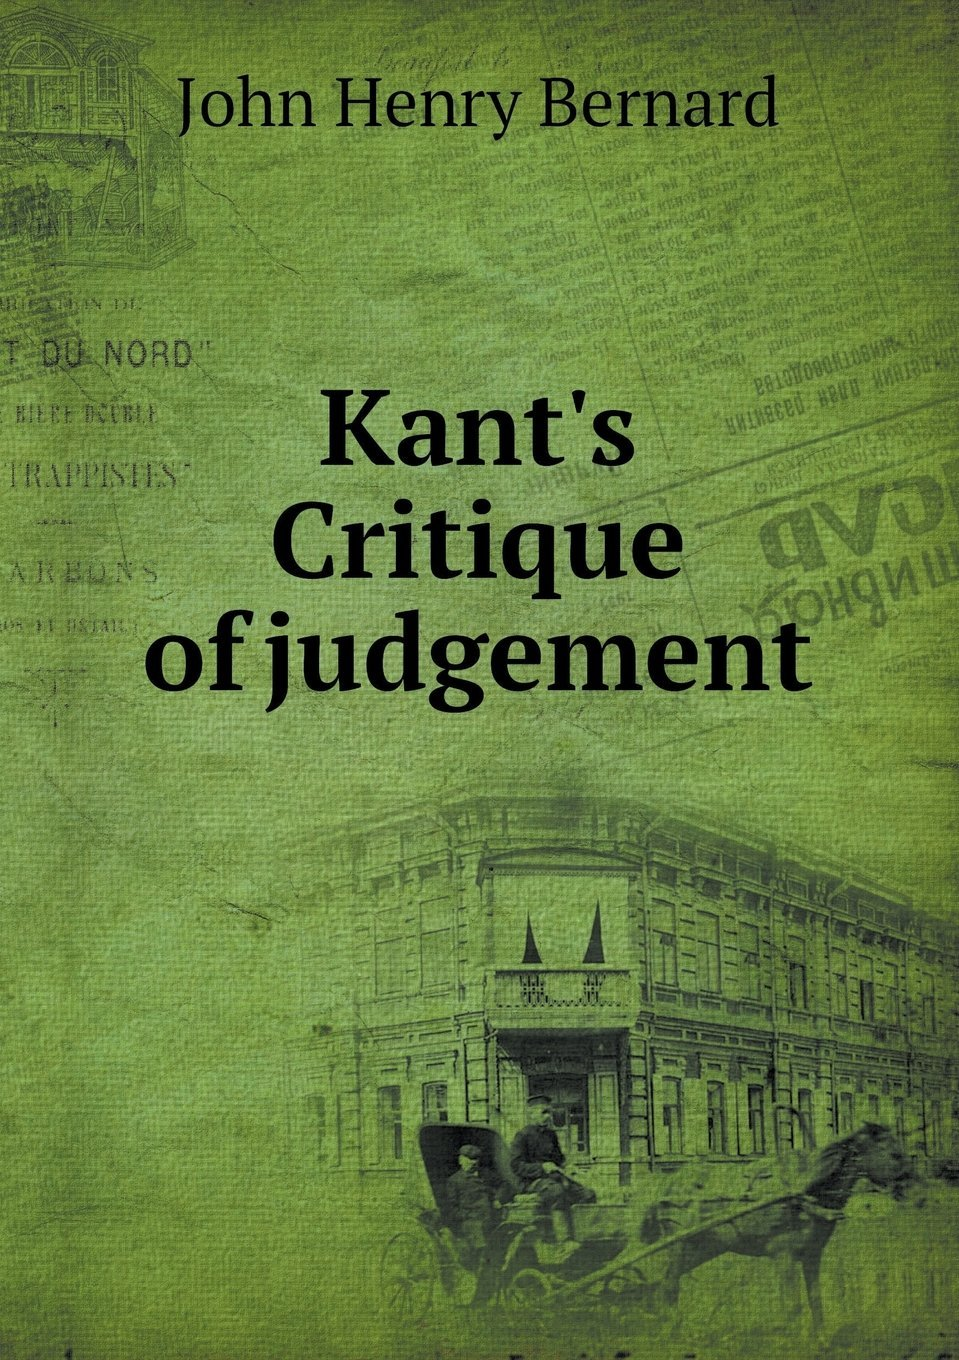 Kant's Critique of Judgement